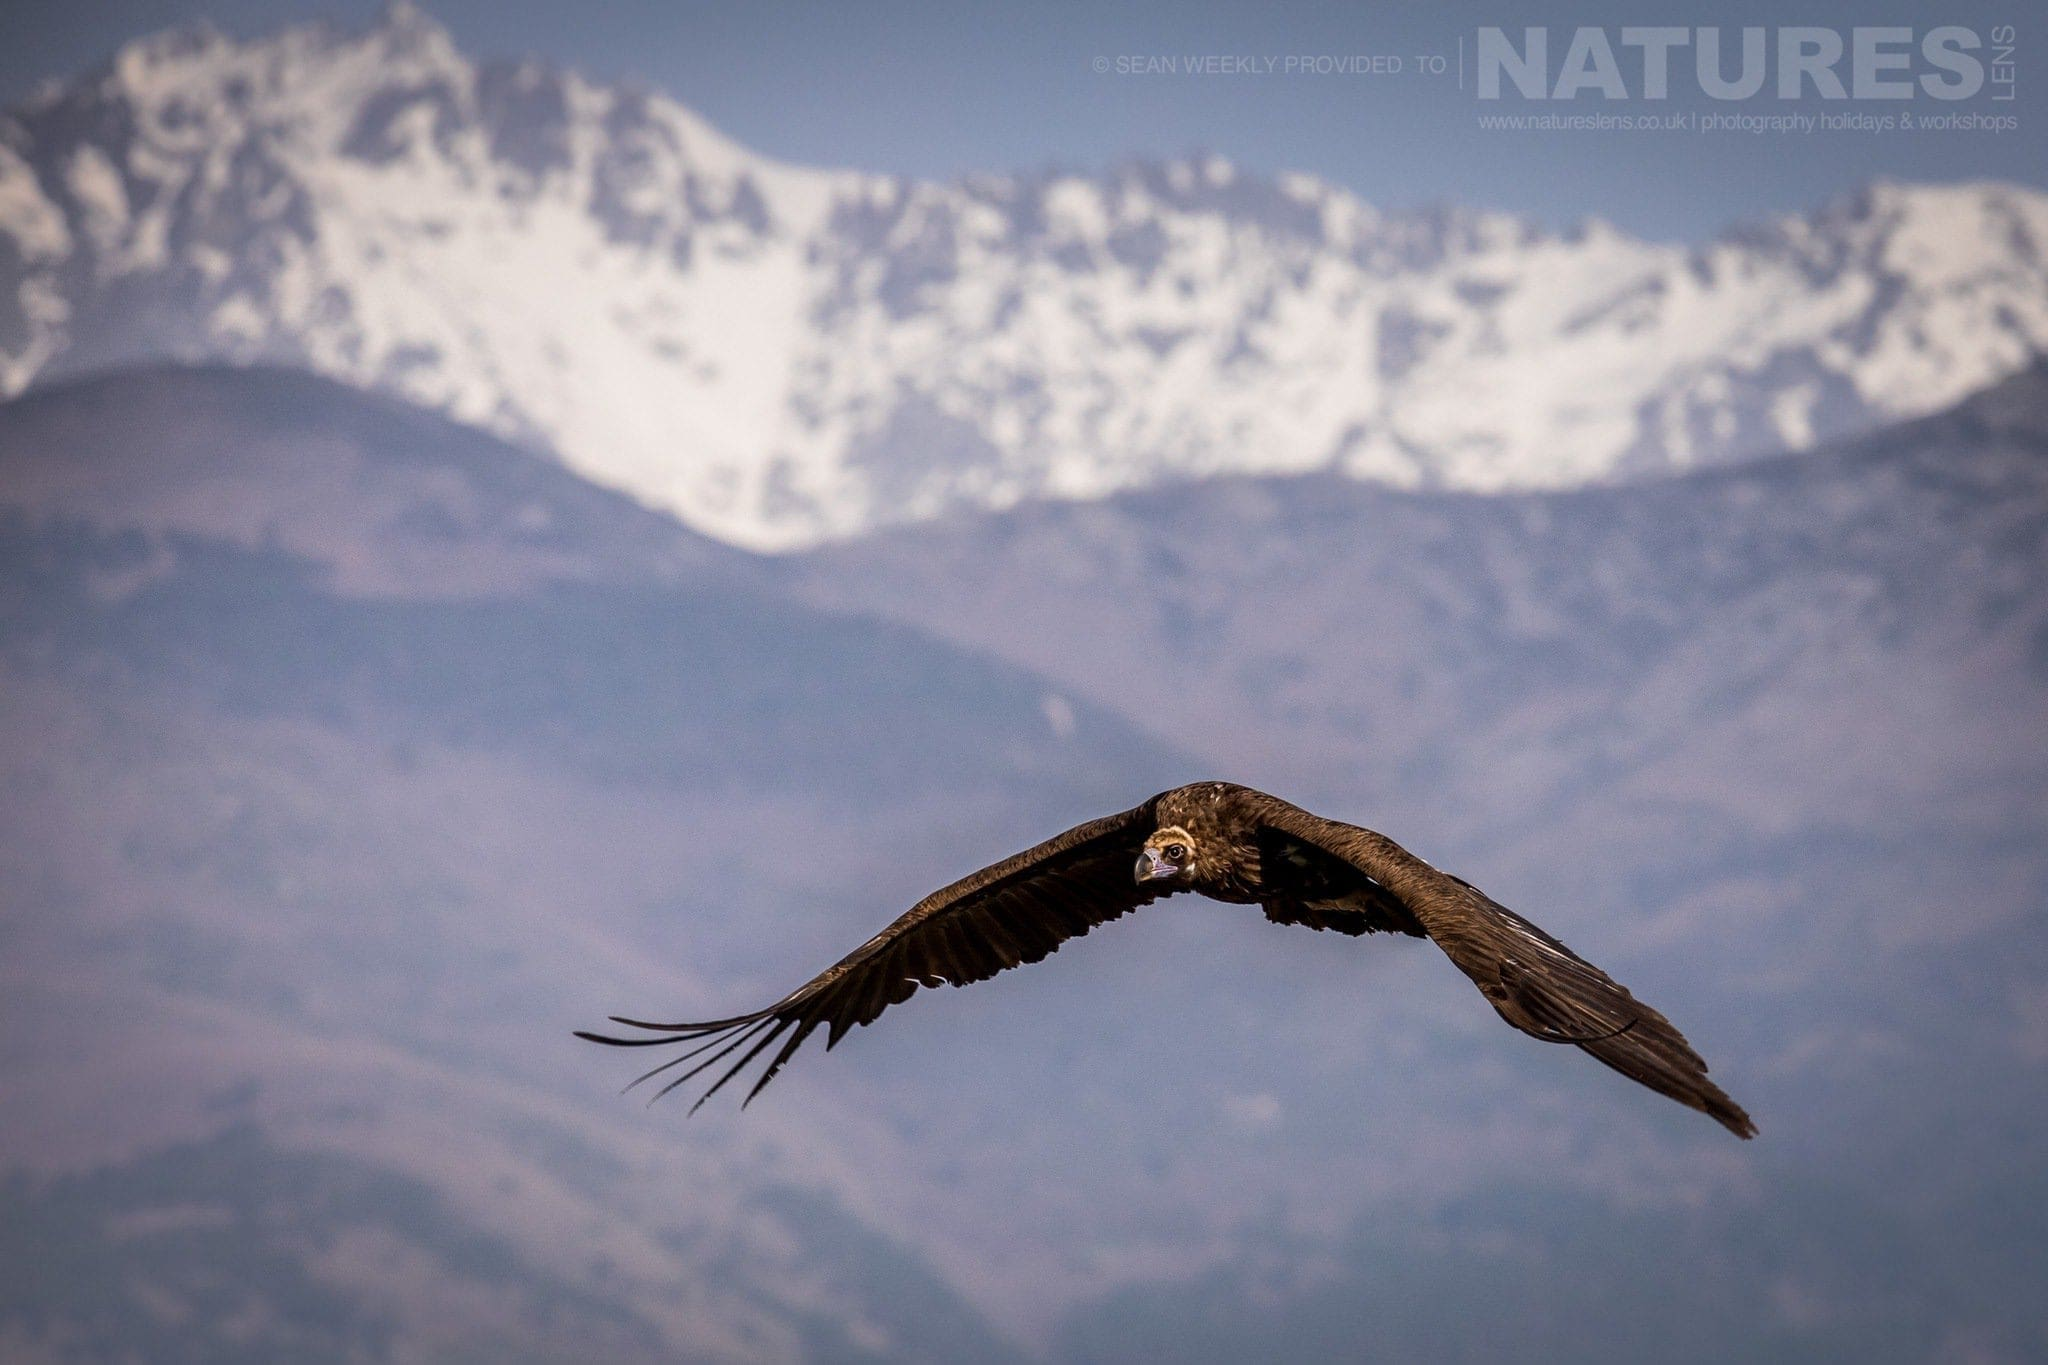 One Of The Vultures Circles The Carrion Hide Site, With The Sierra De Gredos Mountain Range Behind   Image Captured During The 2018 Spanish Bird Photography Holiday In Calera